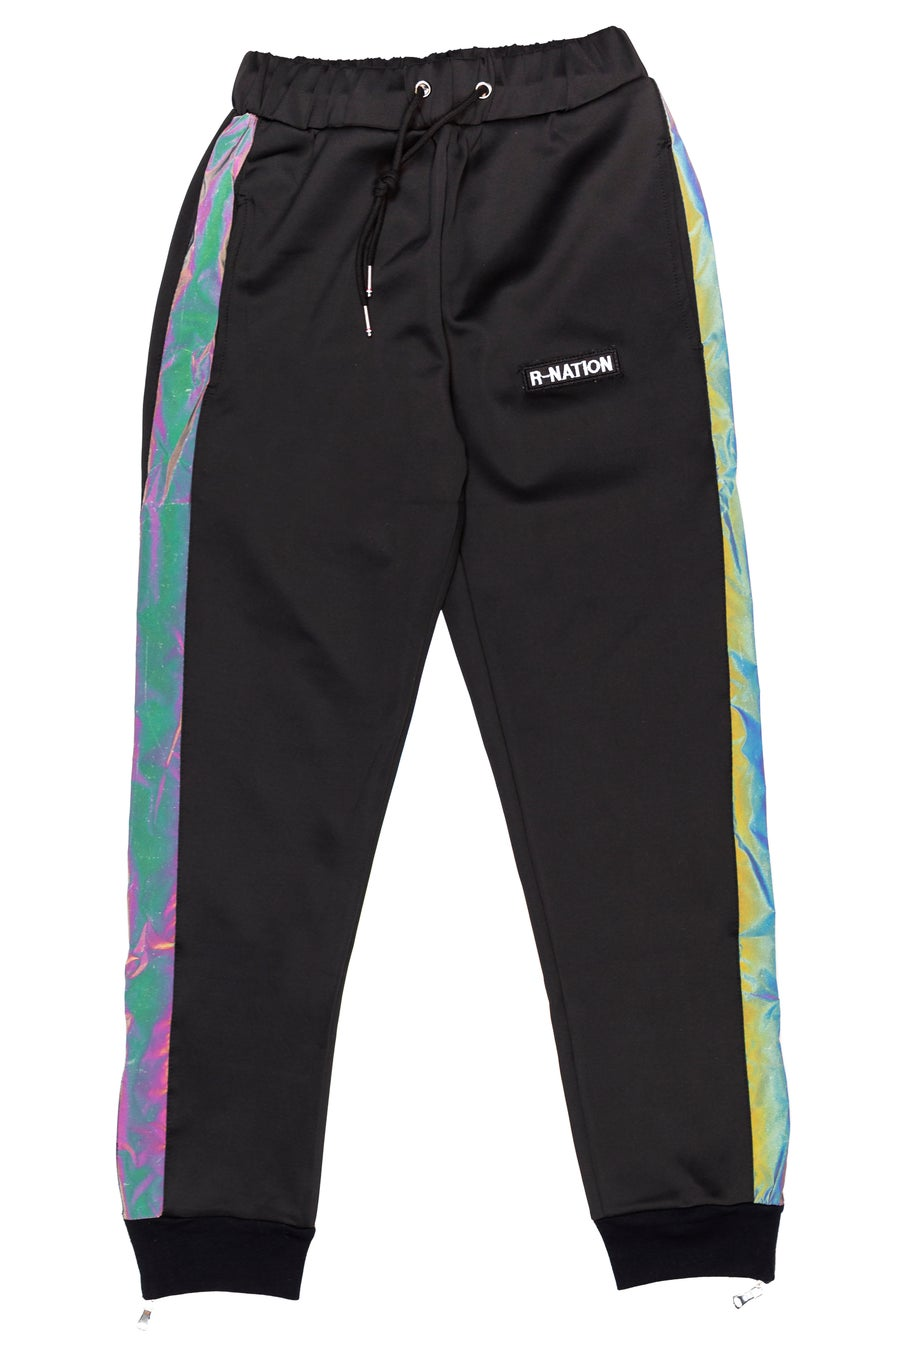 Image of R-NATION TRACKSUIT PANT